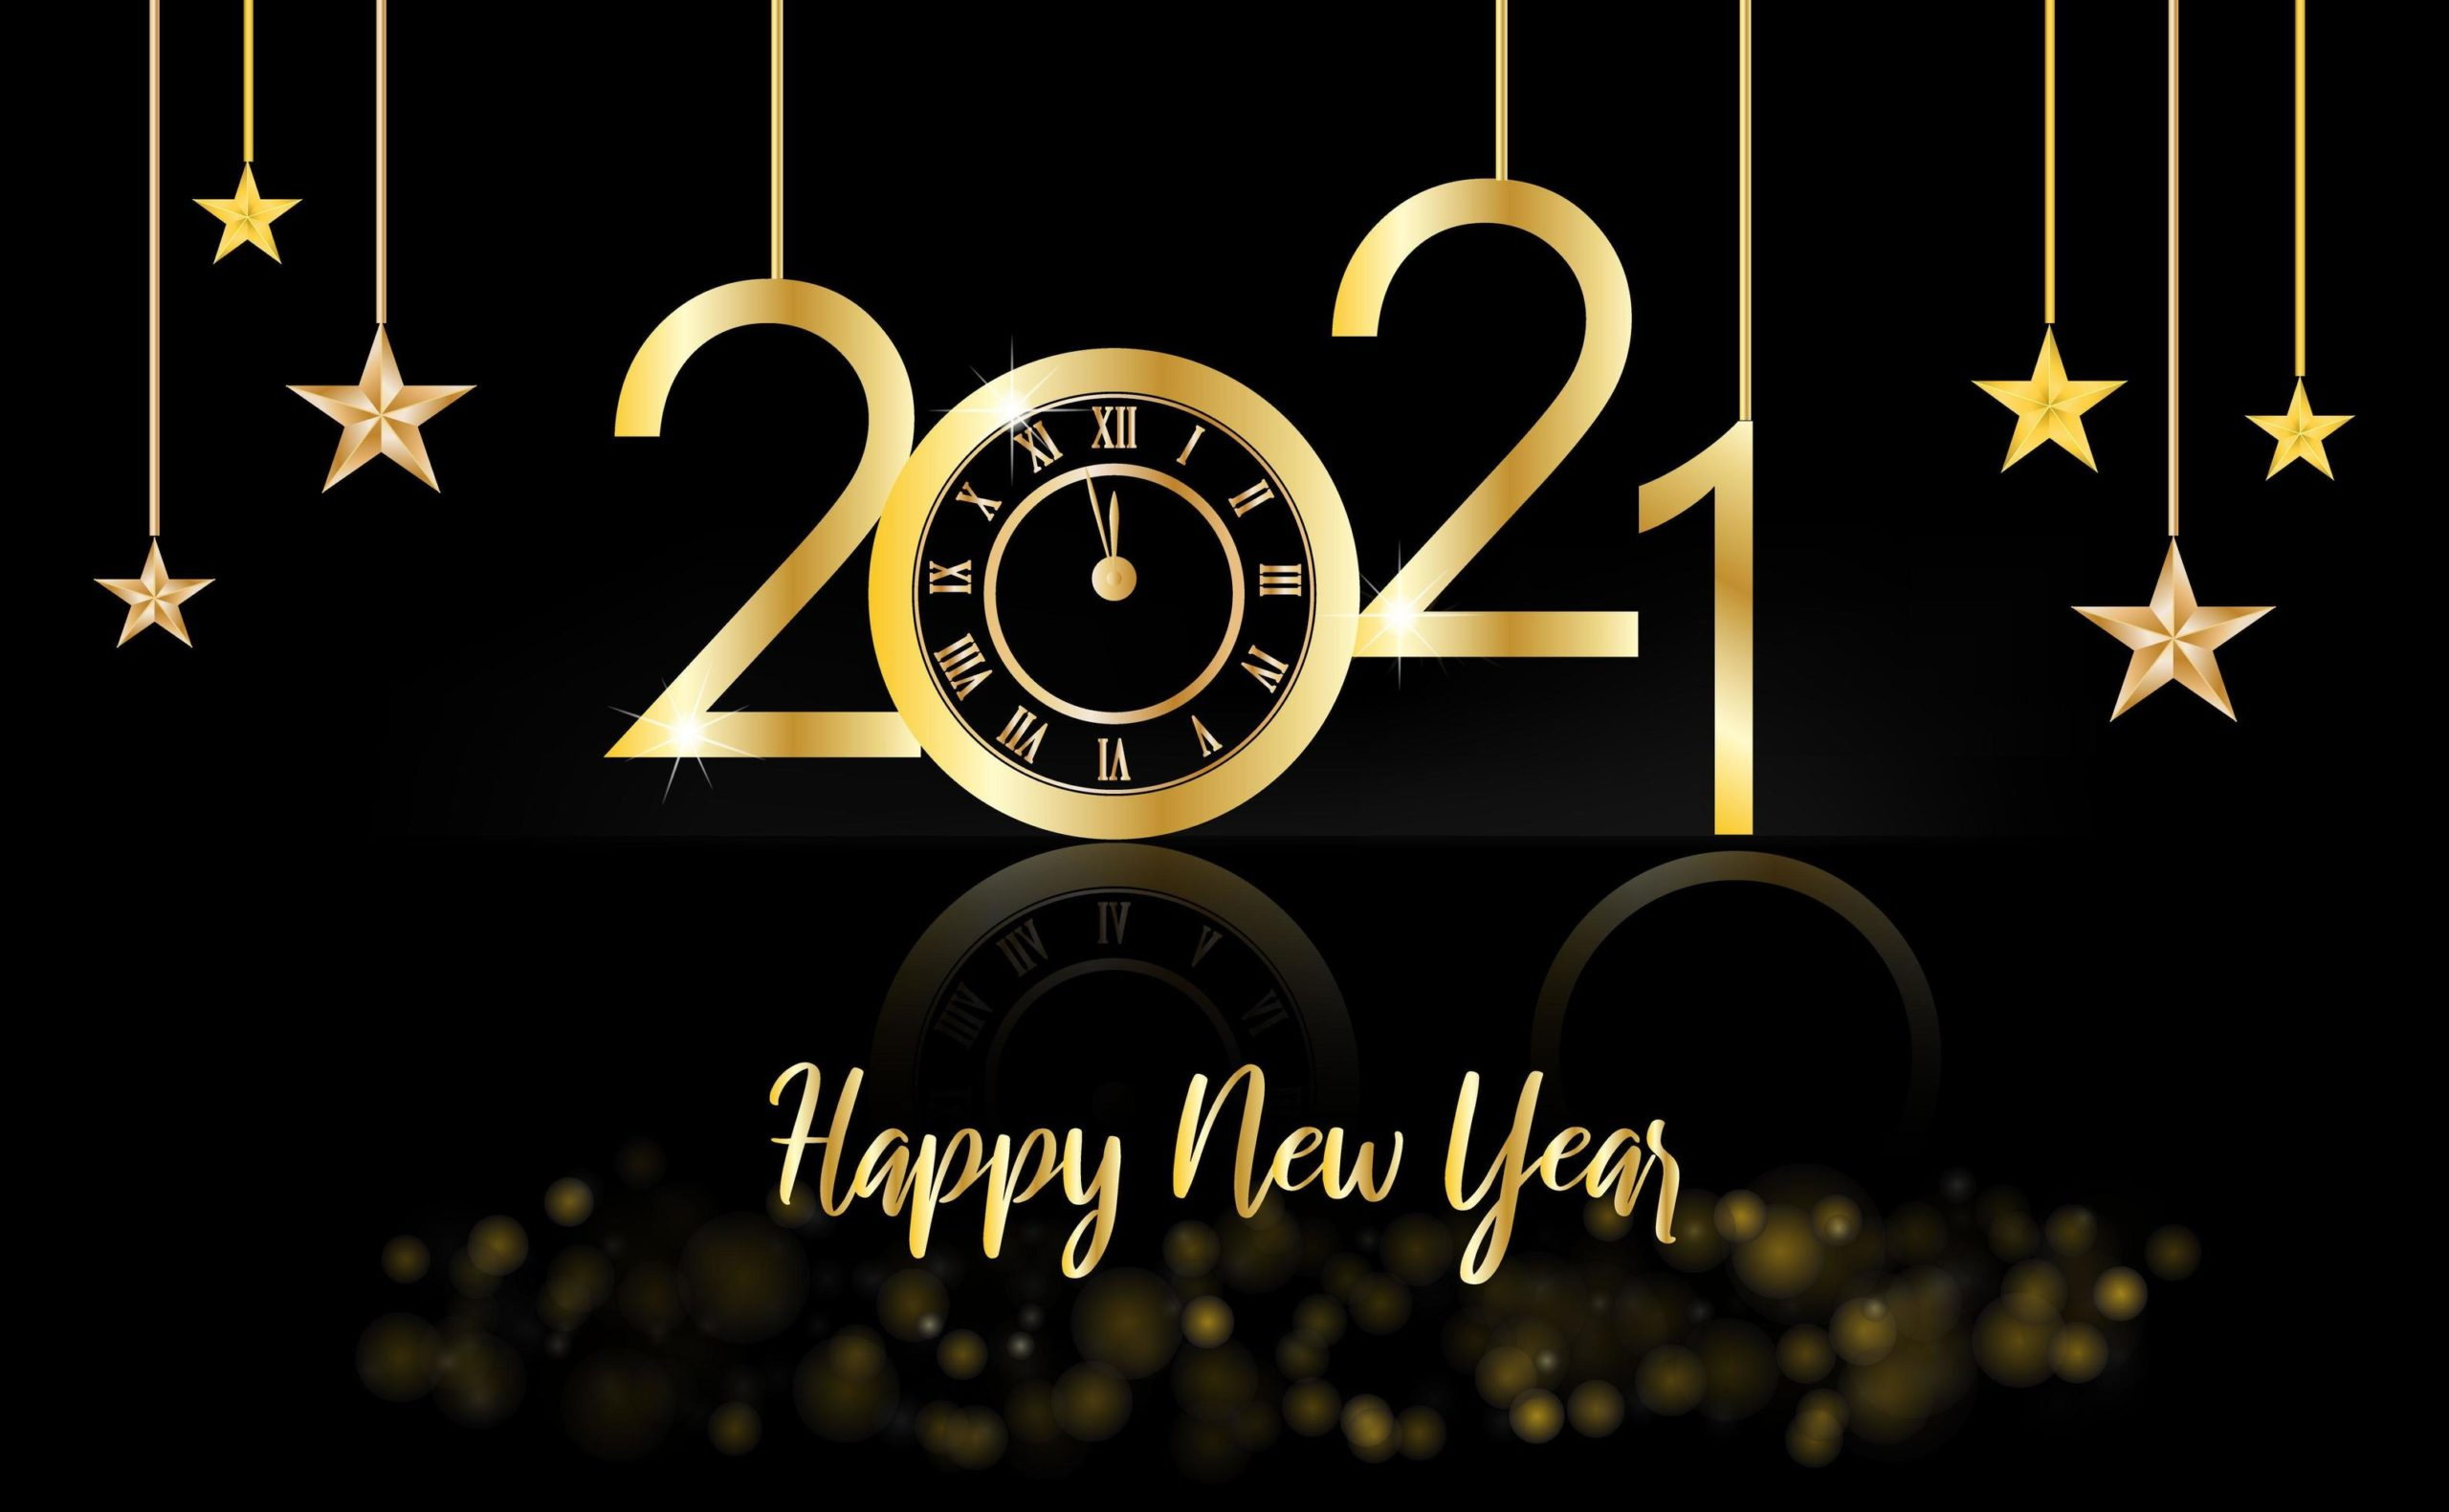 happy-new-year-2021-gold-and-black-background-with-a-clock-and-stars